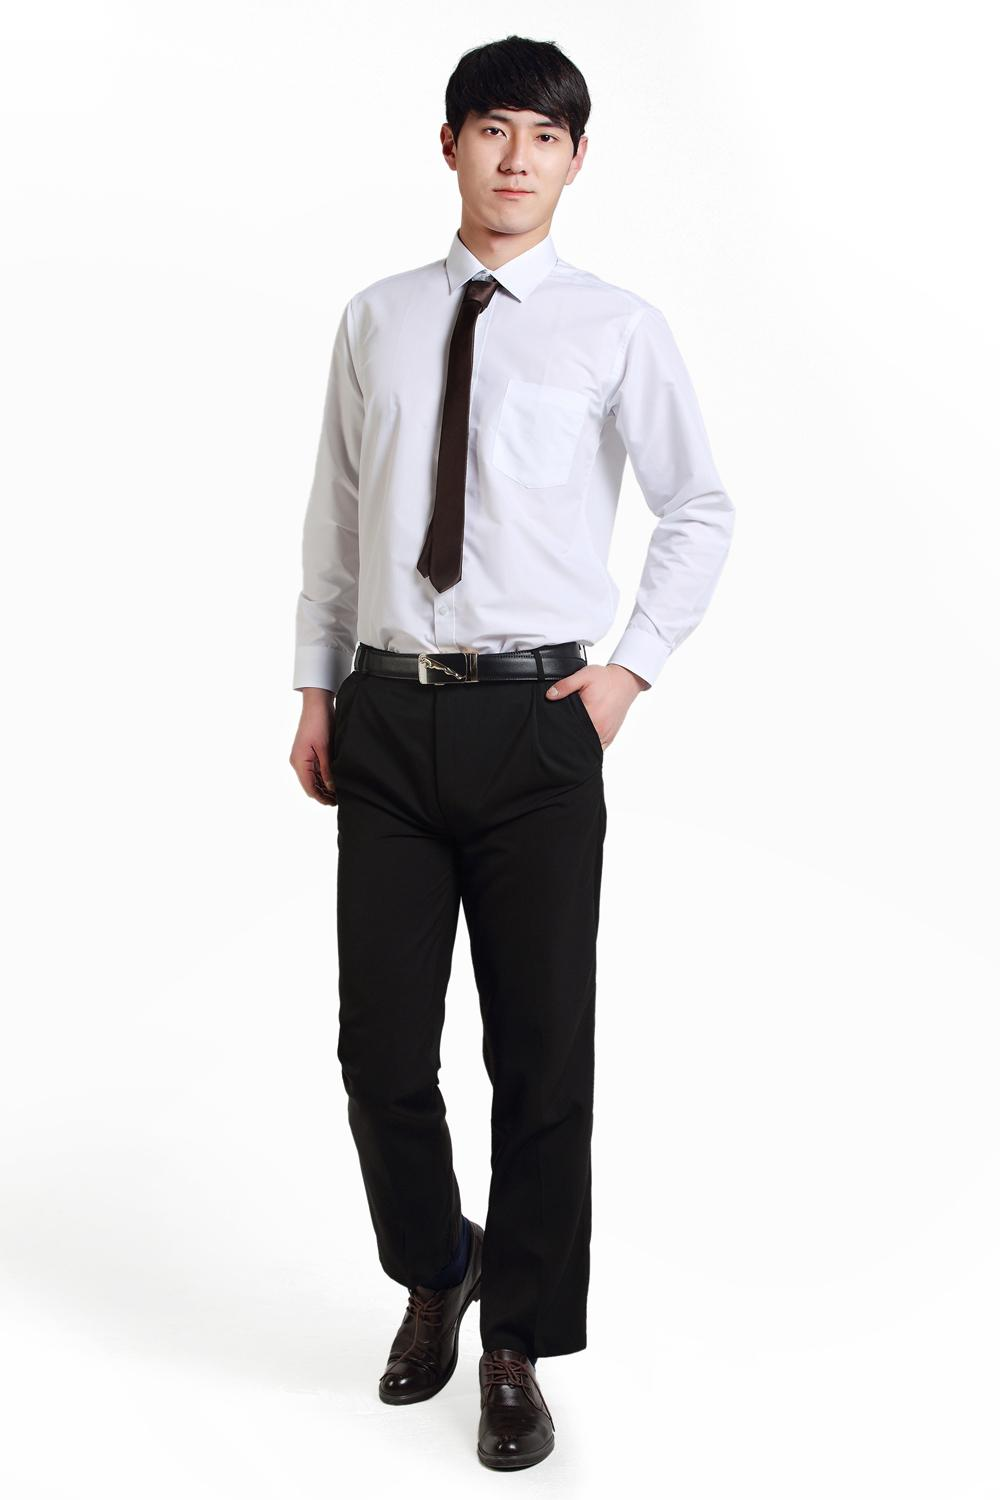 Shirt design for man 2017 - 2017 Oem Office Suit Business Suit Design For Men White Shirt And Black Pant Style From Patty_ren 31 25 Dhgate Com